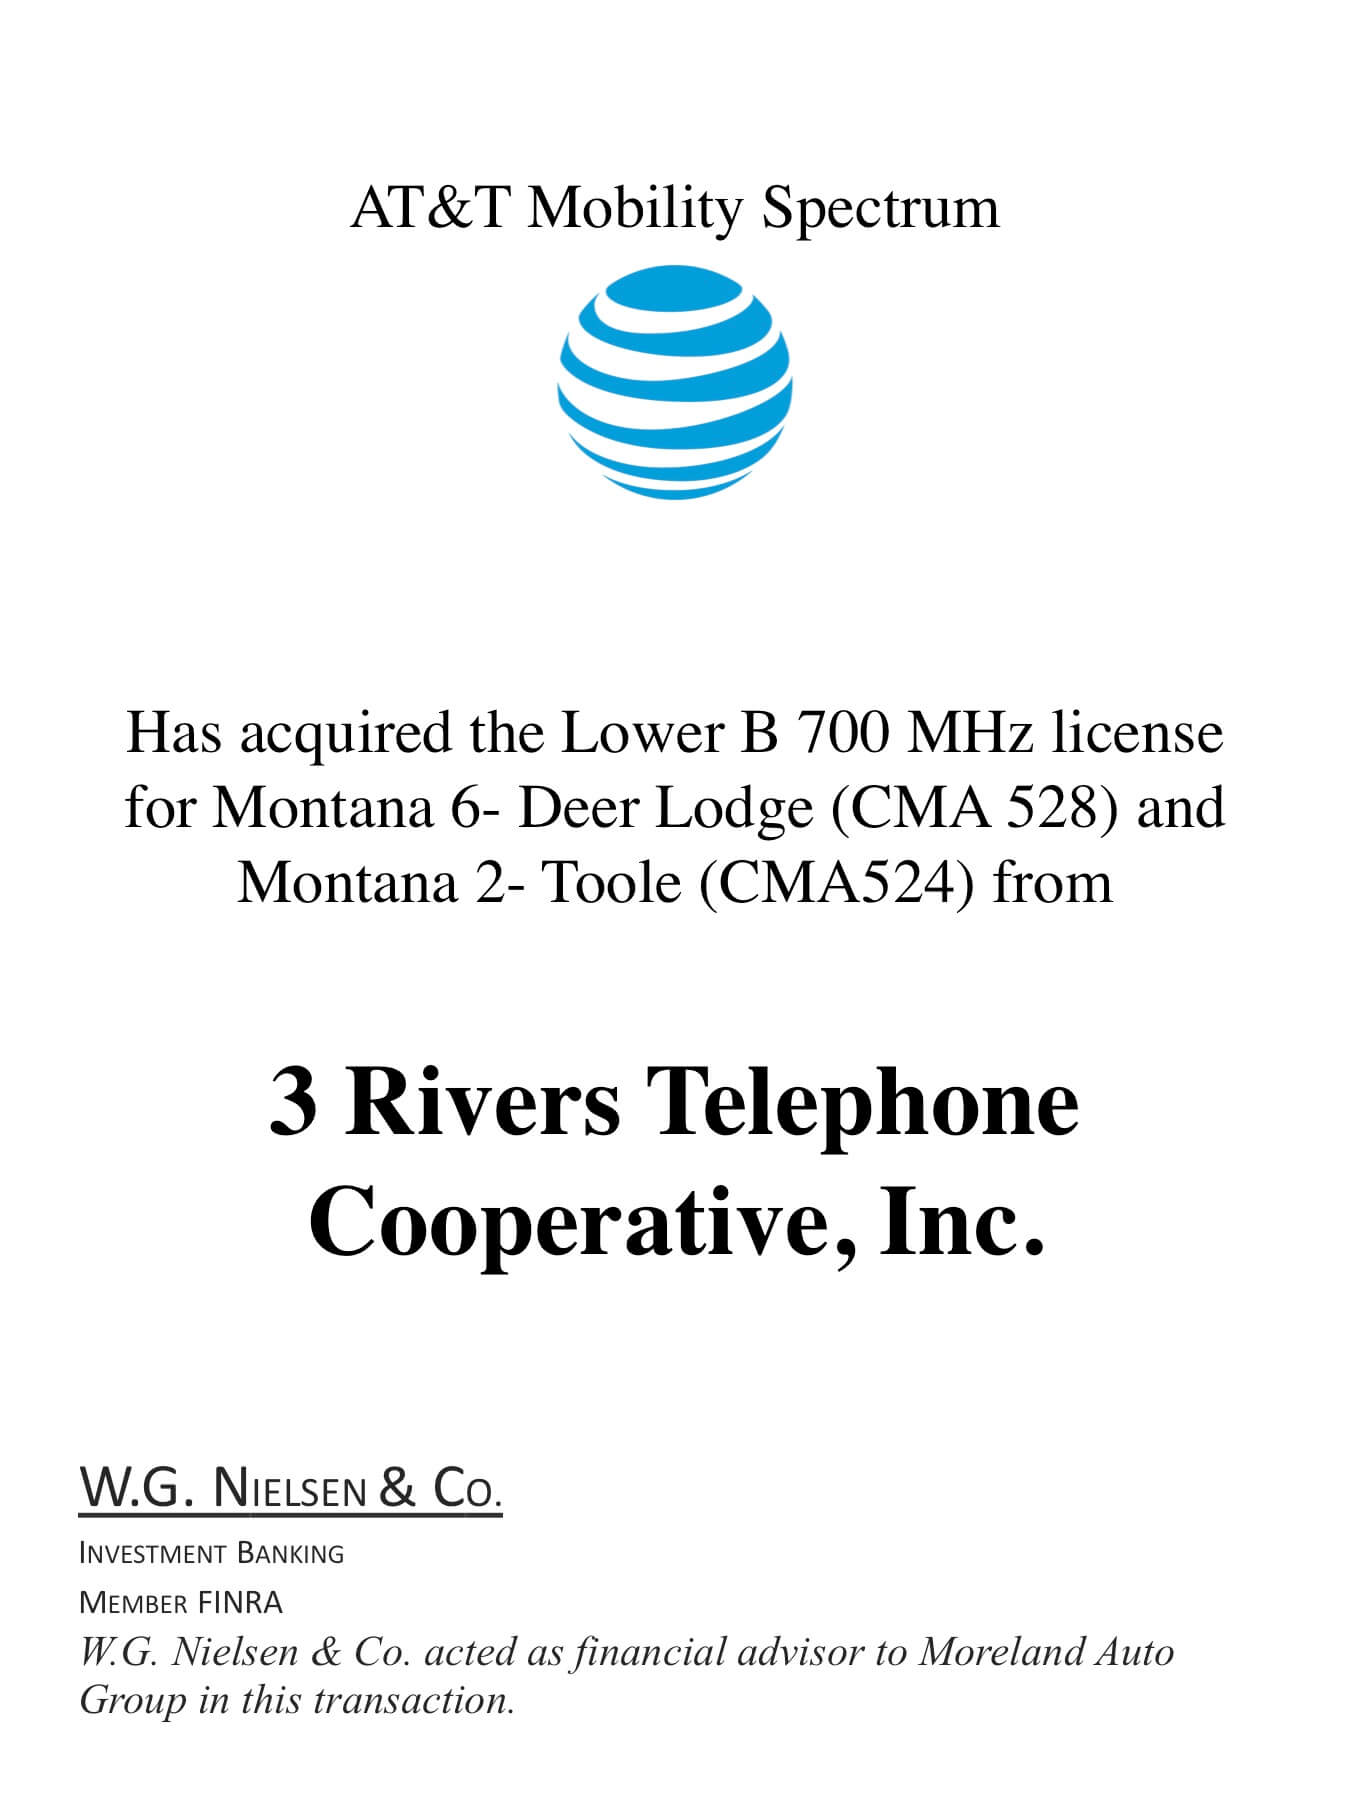 at&t mobility spectrum investment banking transaction